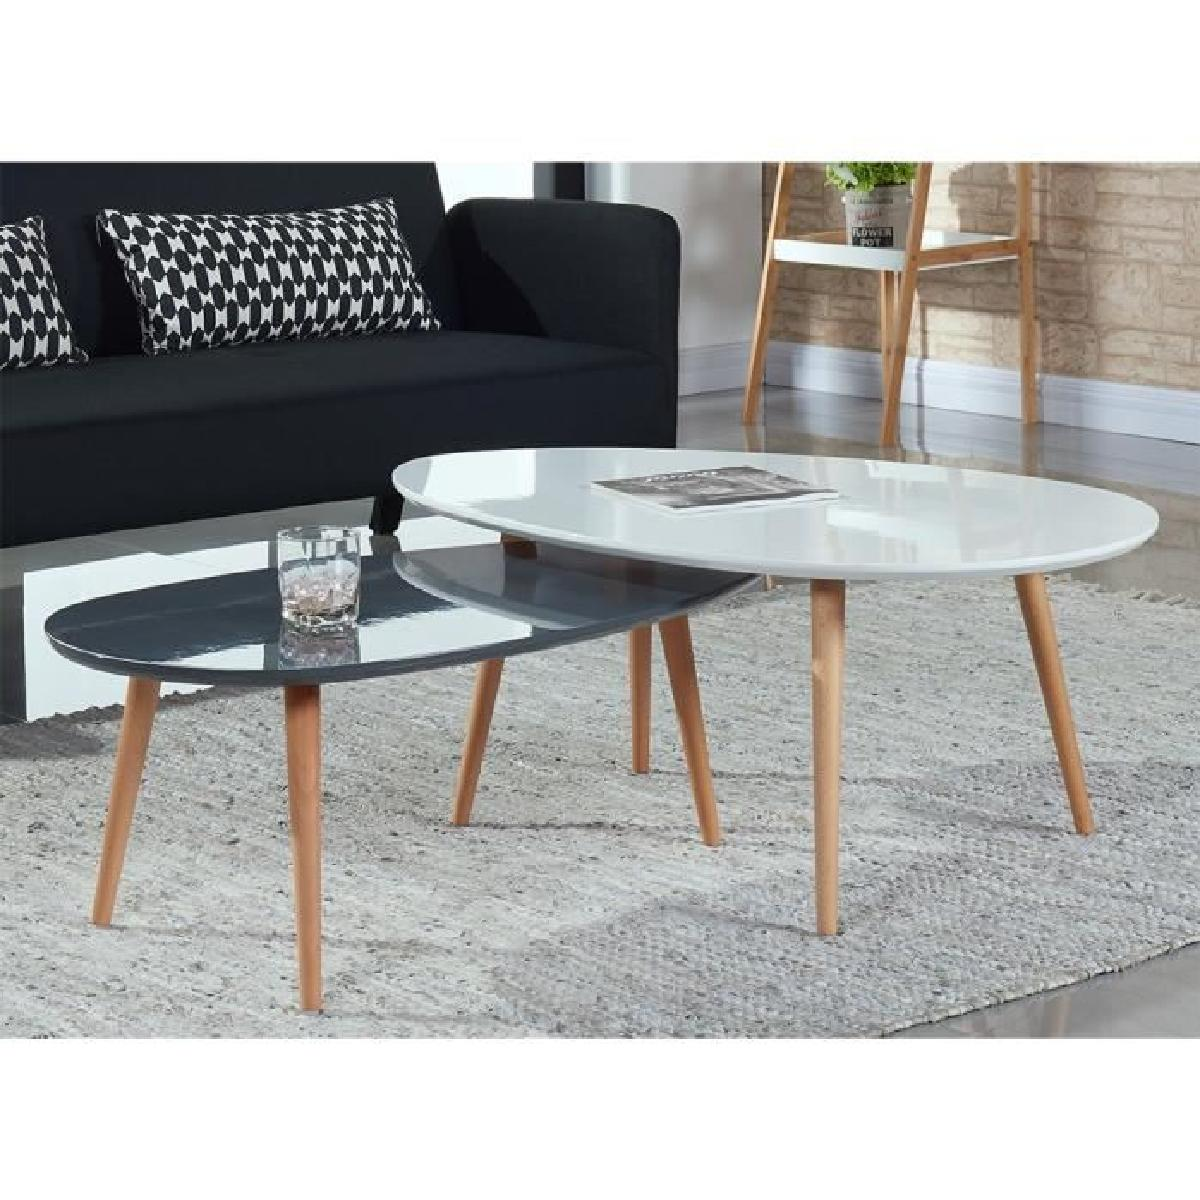 Table Basse Scandinave Blanche Table Basse Scandinave Grise Et Blanche Lille Menage Fr Maison